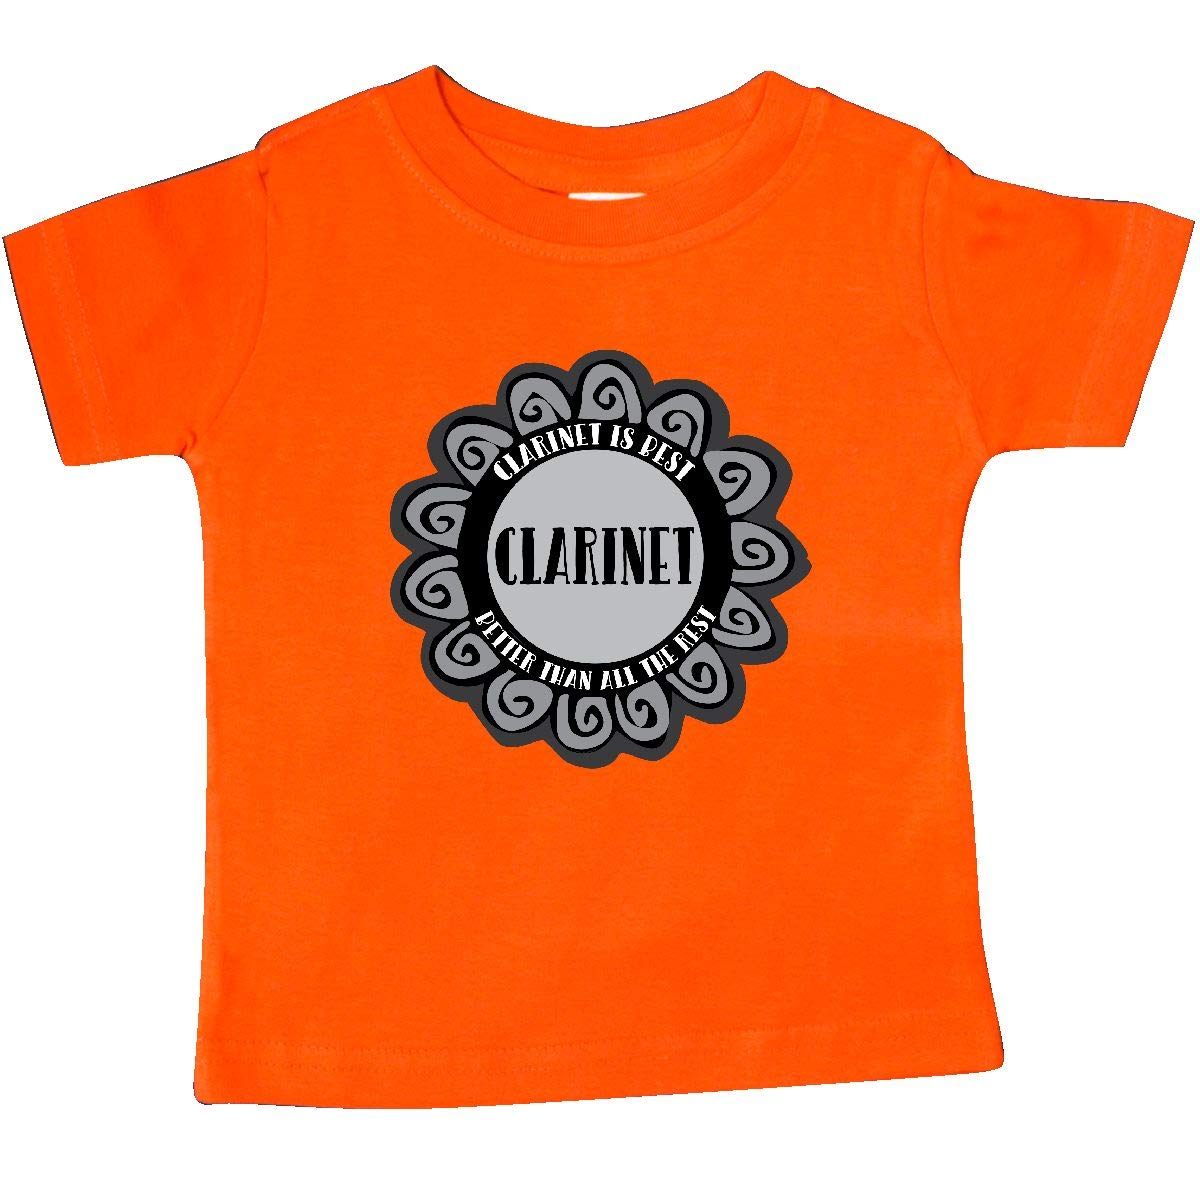 inktastic Clarinet is Best Baby T-Shirt